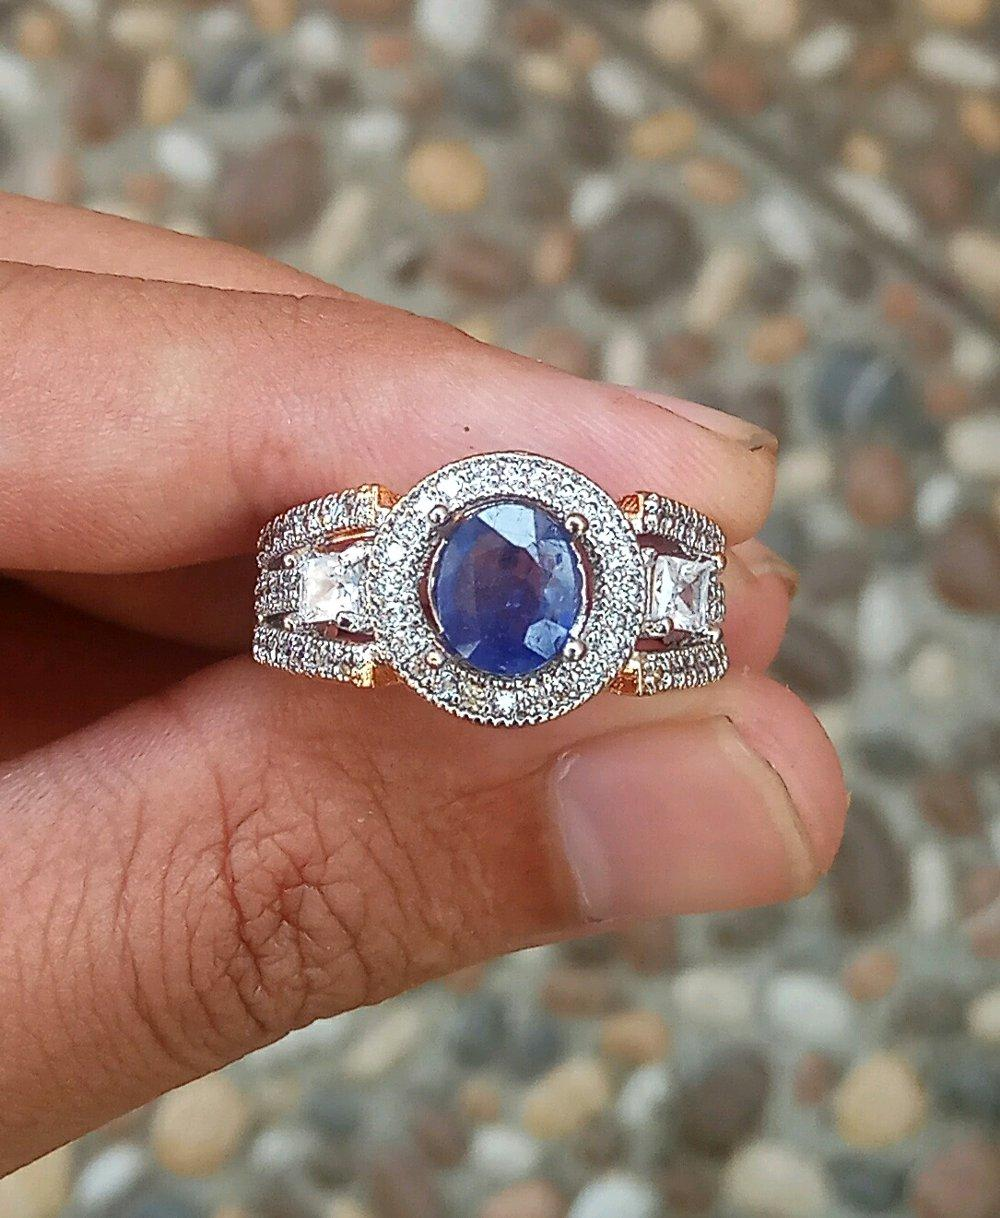 Best New Promo Blue Safir Cutting Natural Se Indonesia By Central Gemstone Shop.